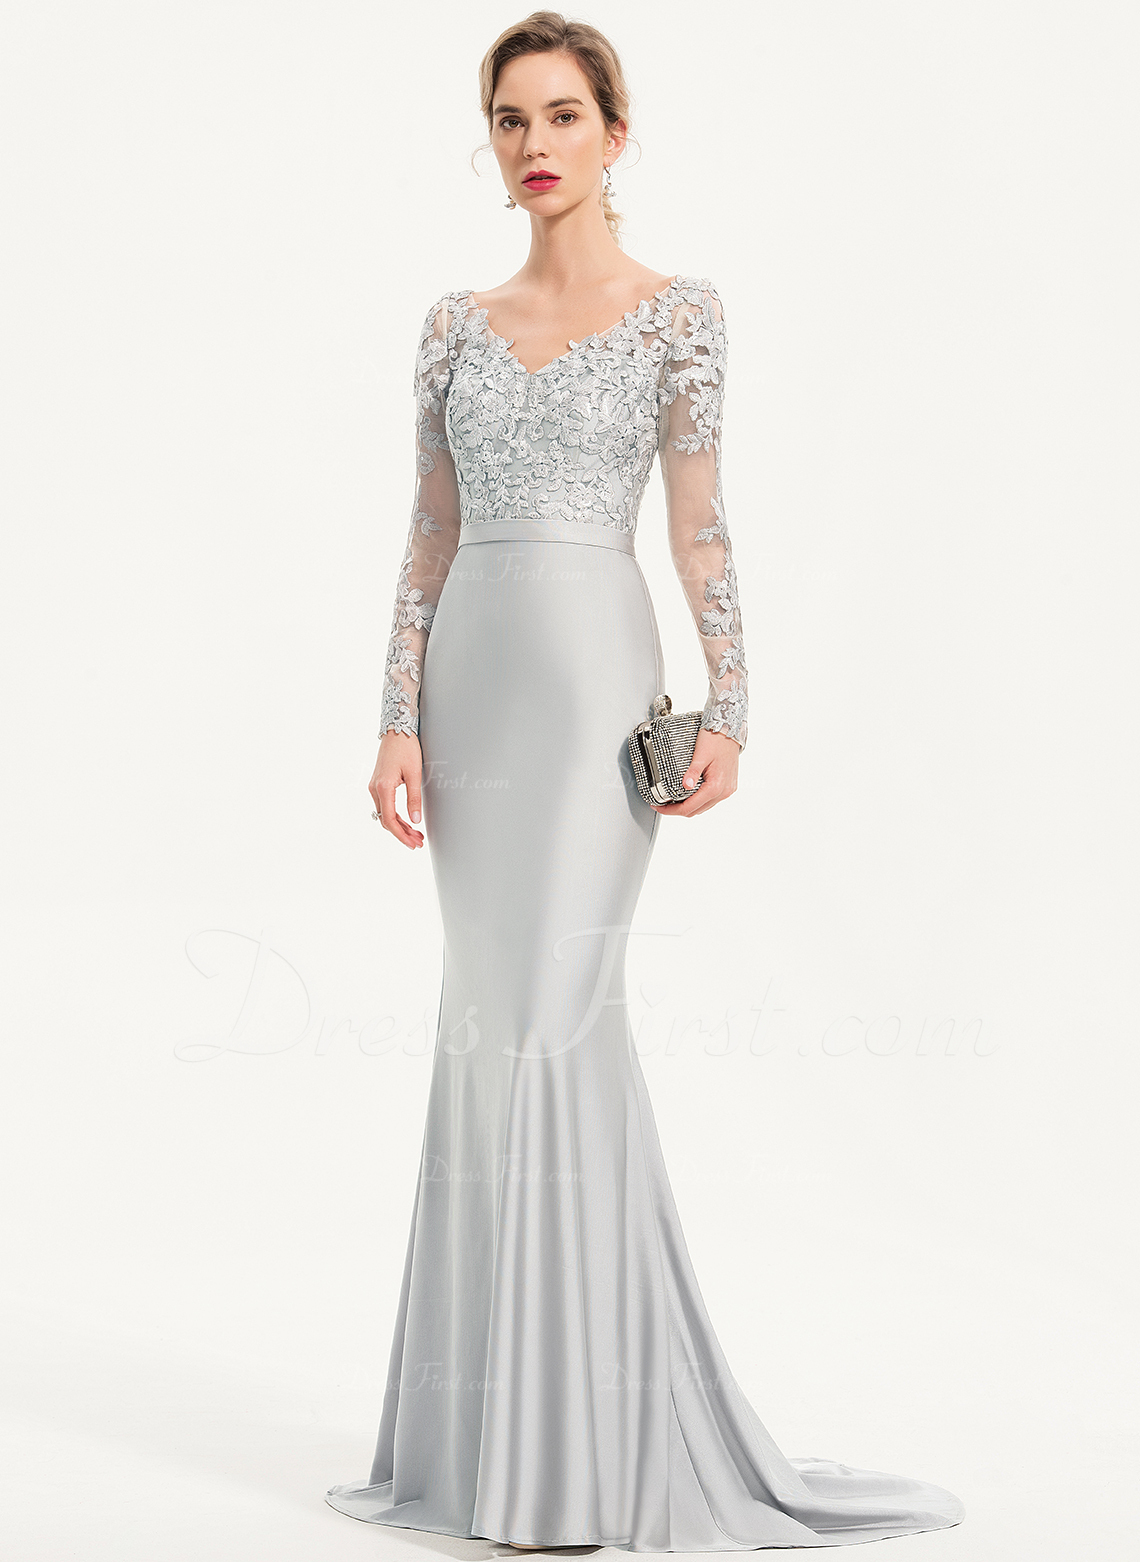 8b9b023b5ebe5 Trumpet/Mermaid V-neck Sweep Train Jersey Evening Dress With Sequins #186145